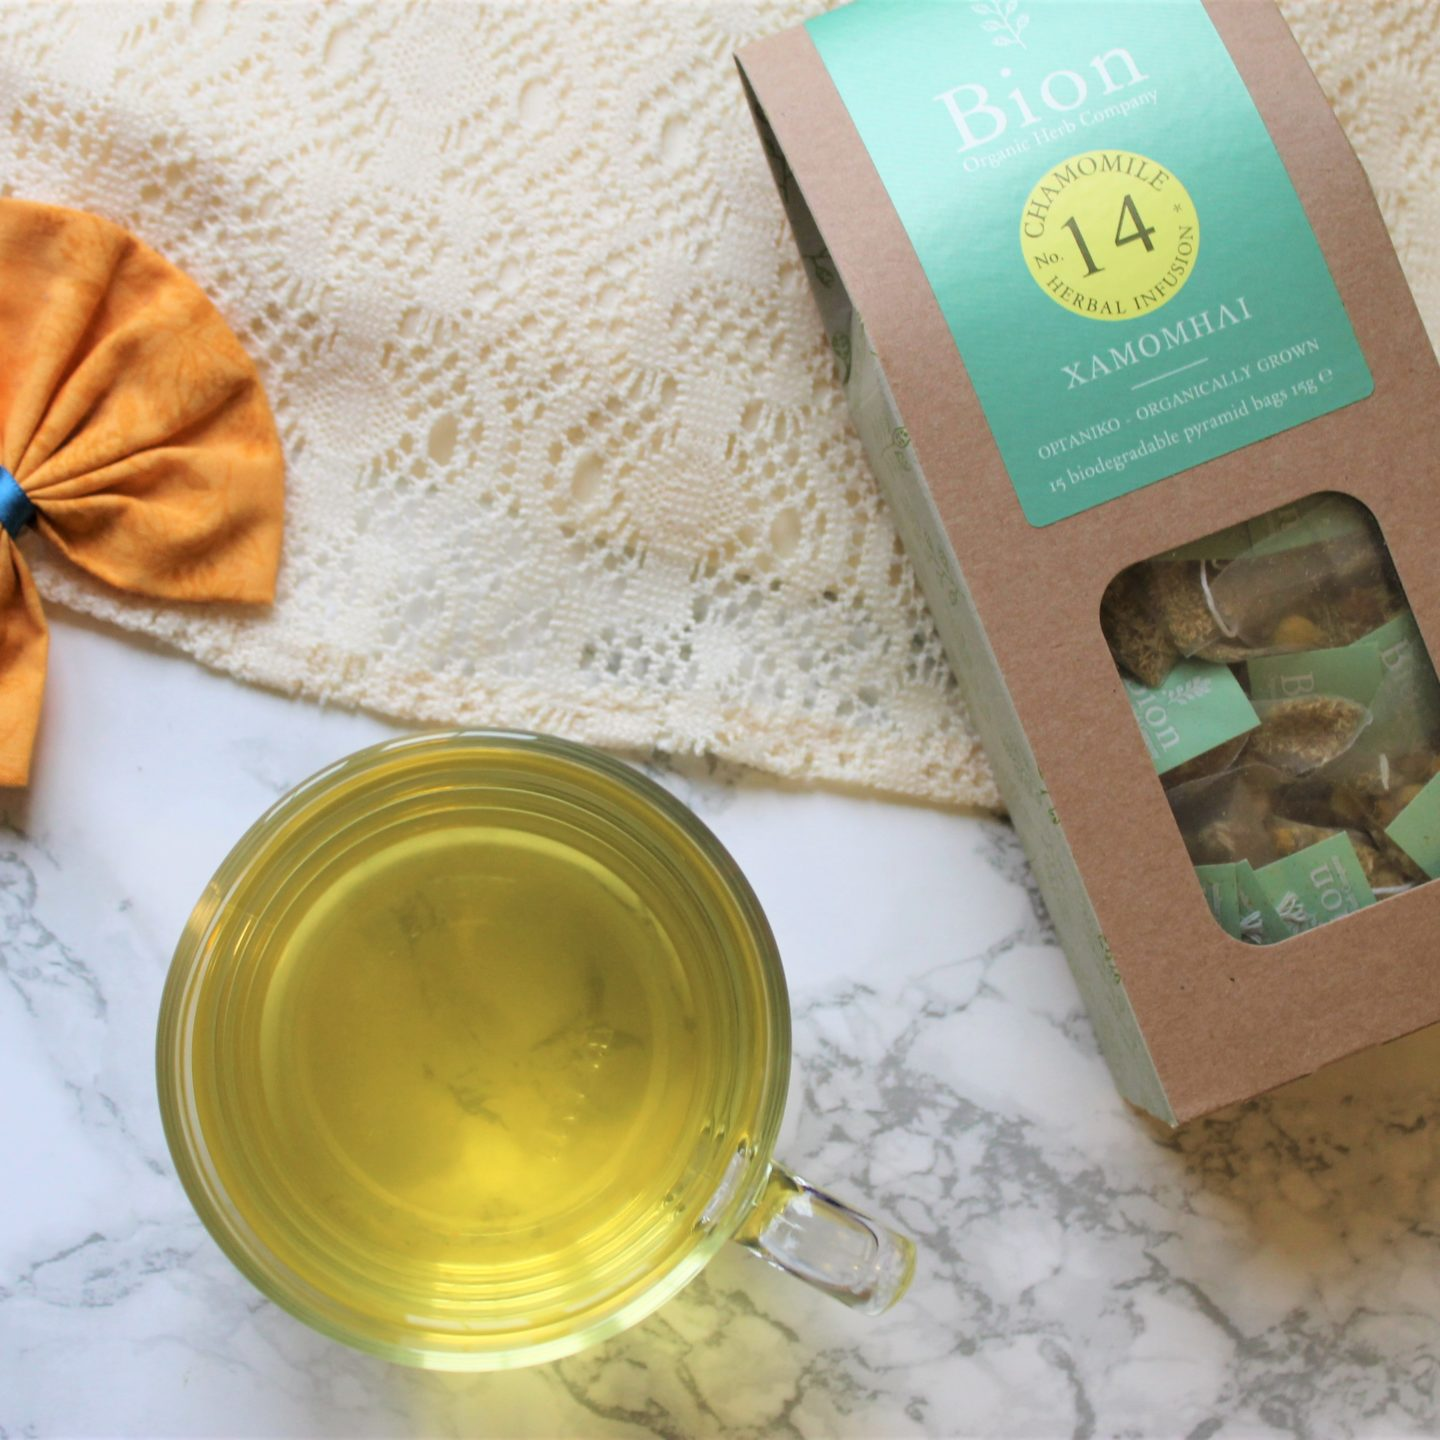 Bion Chamomile Tea Review